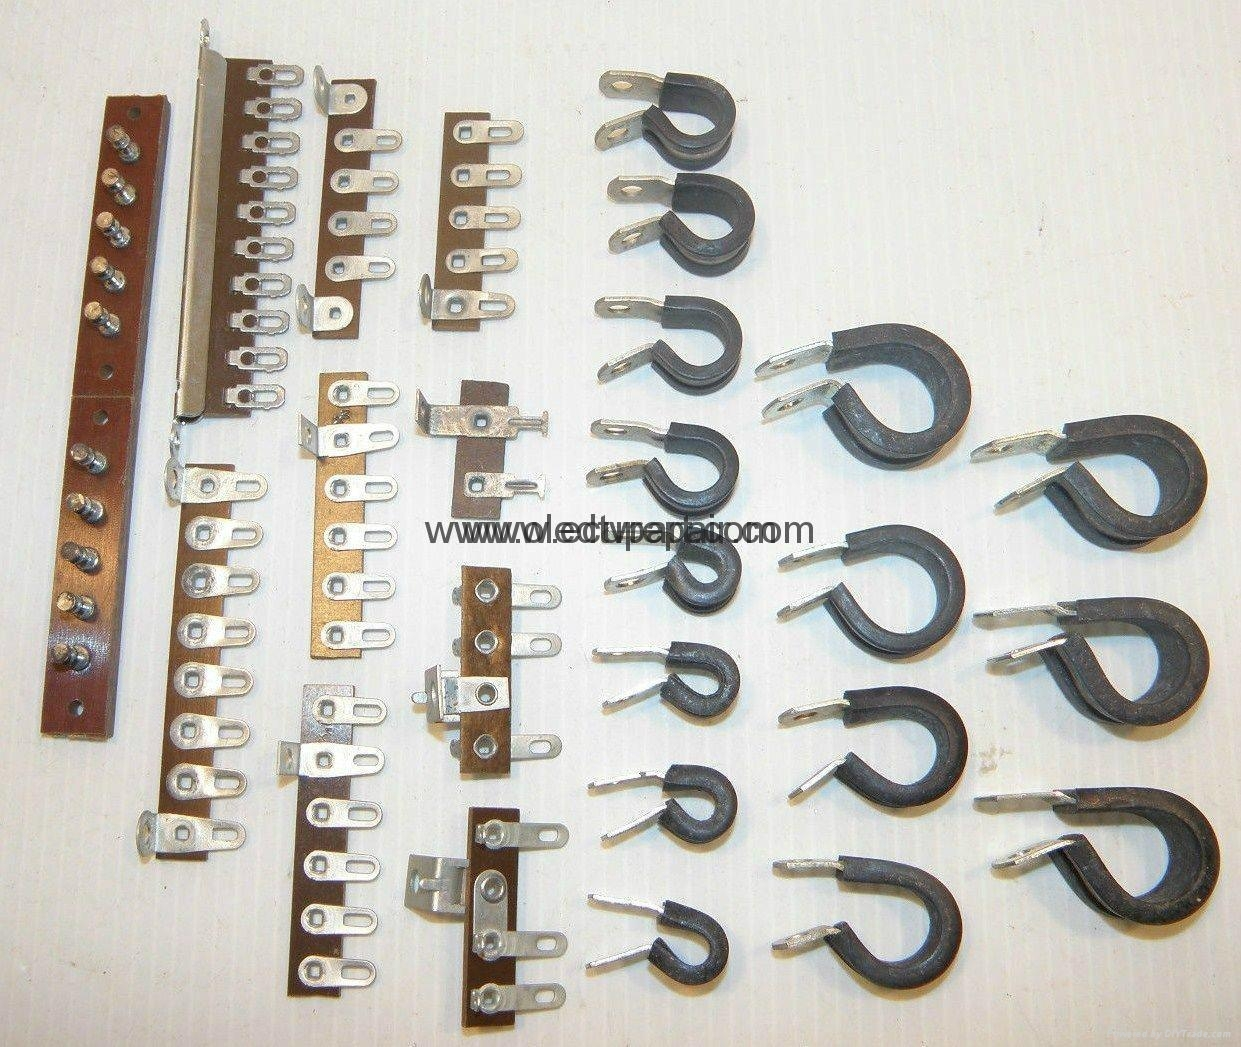 Solder Terminal Strip  Terminal Strip Wiring Board Wire Clamps